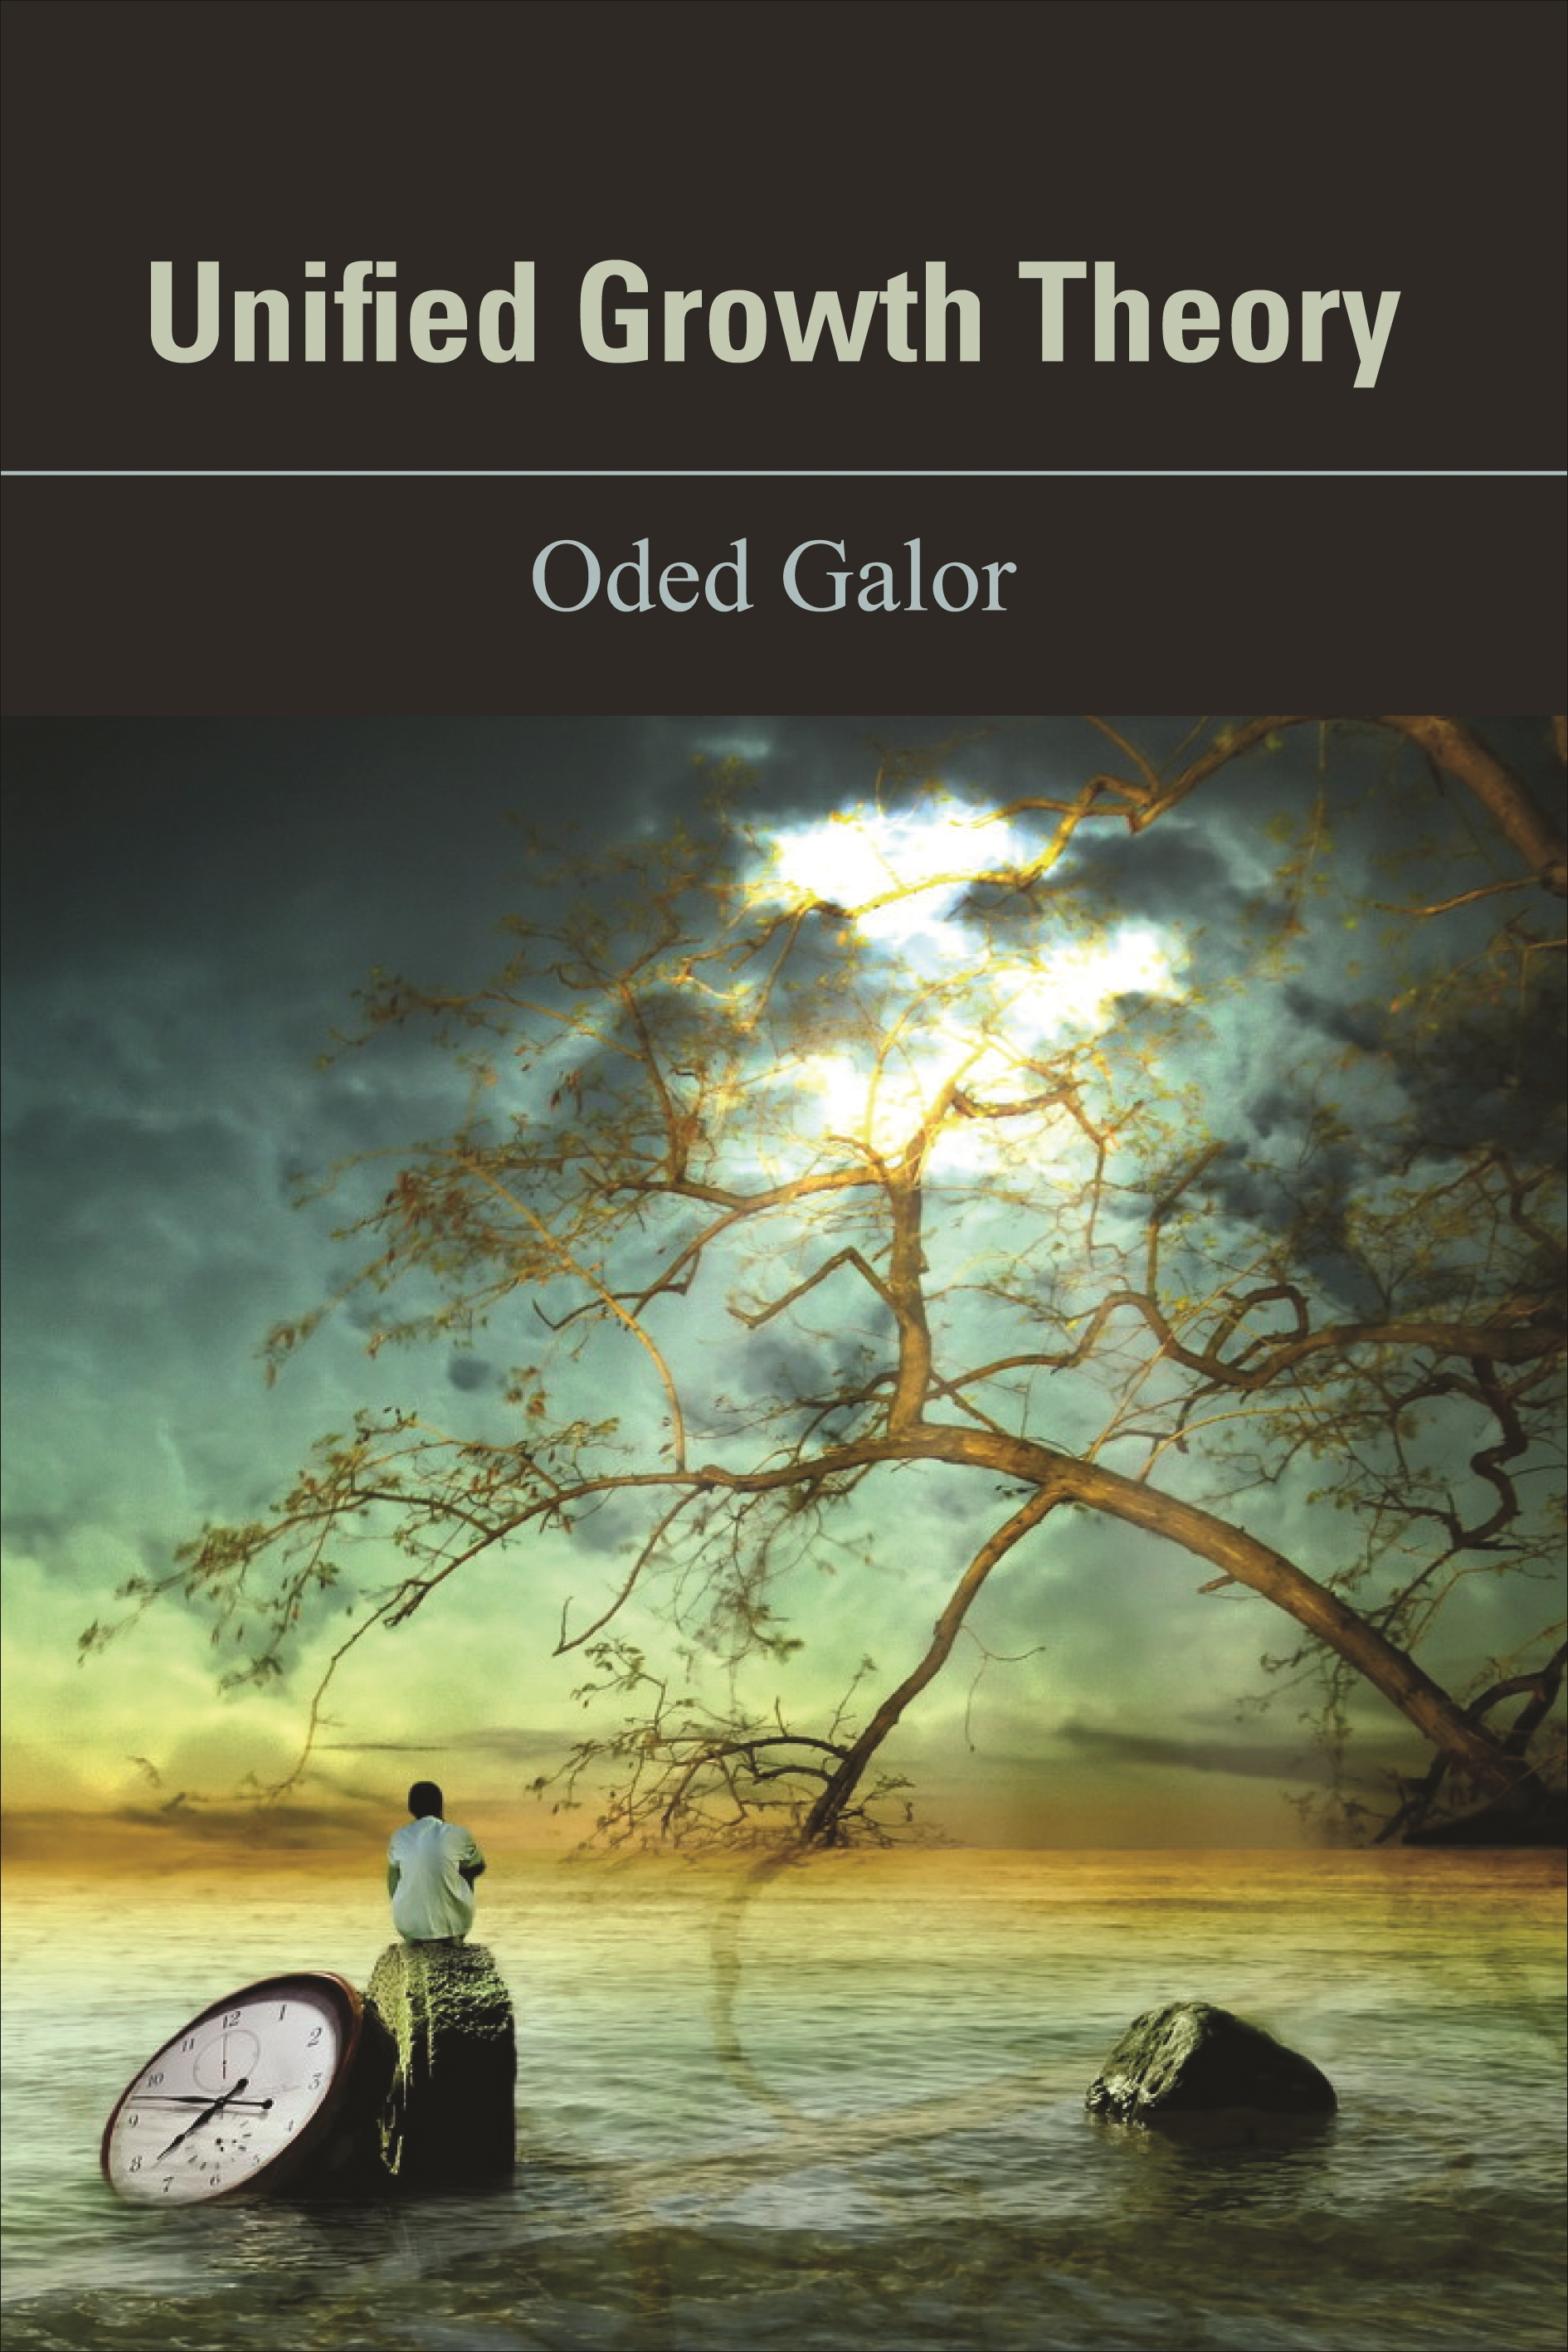 Download Ebook Unified Growth Theory by Oded Galor Pdf